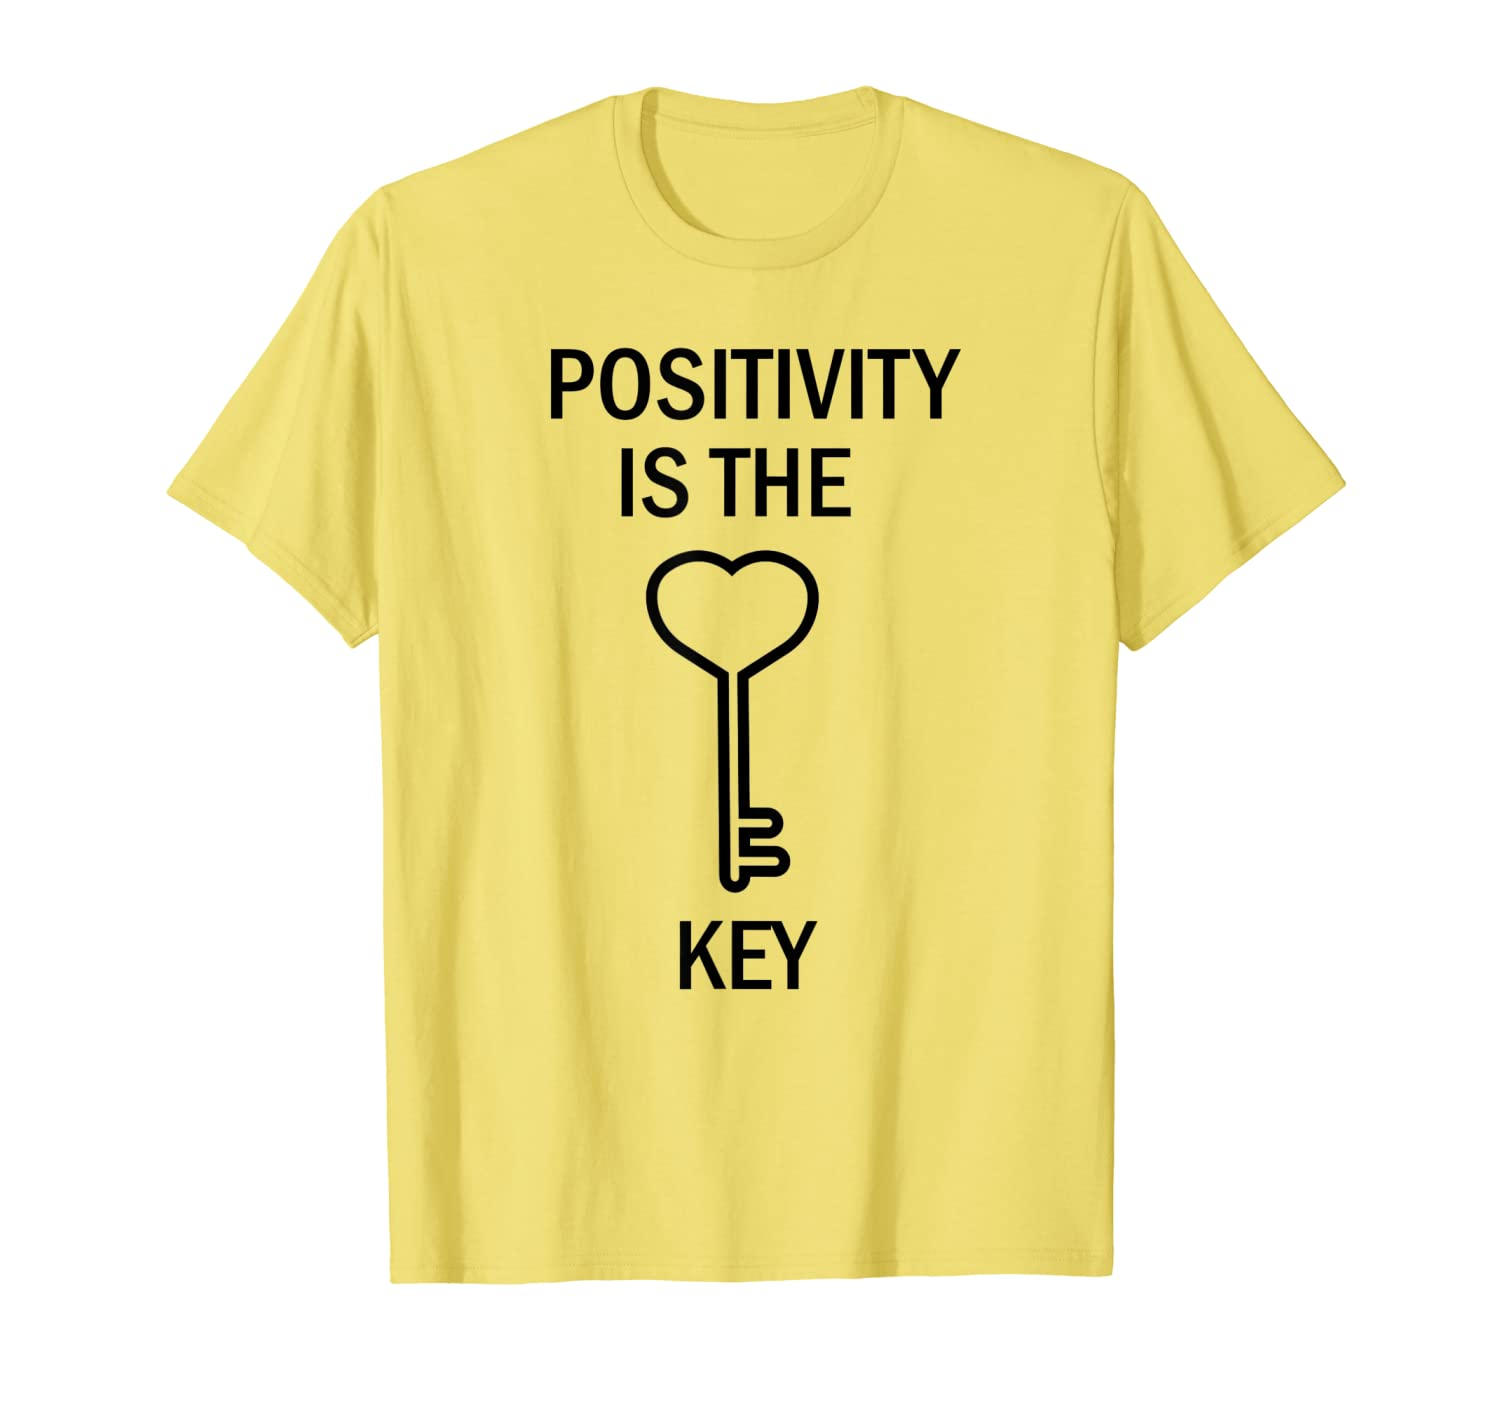 Autism positivity is the key mens womens kids positive T-Shirt